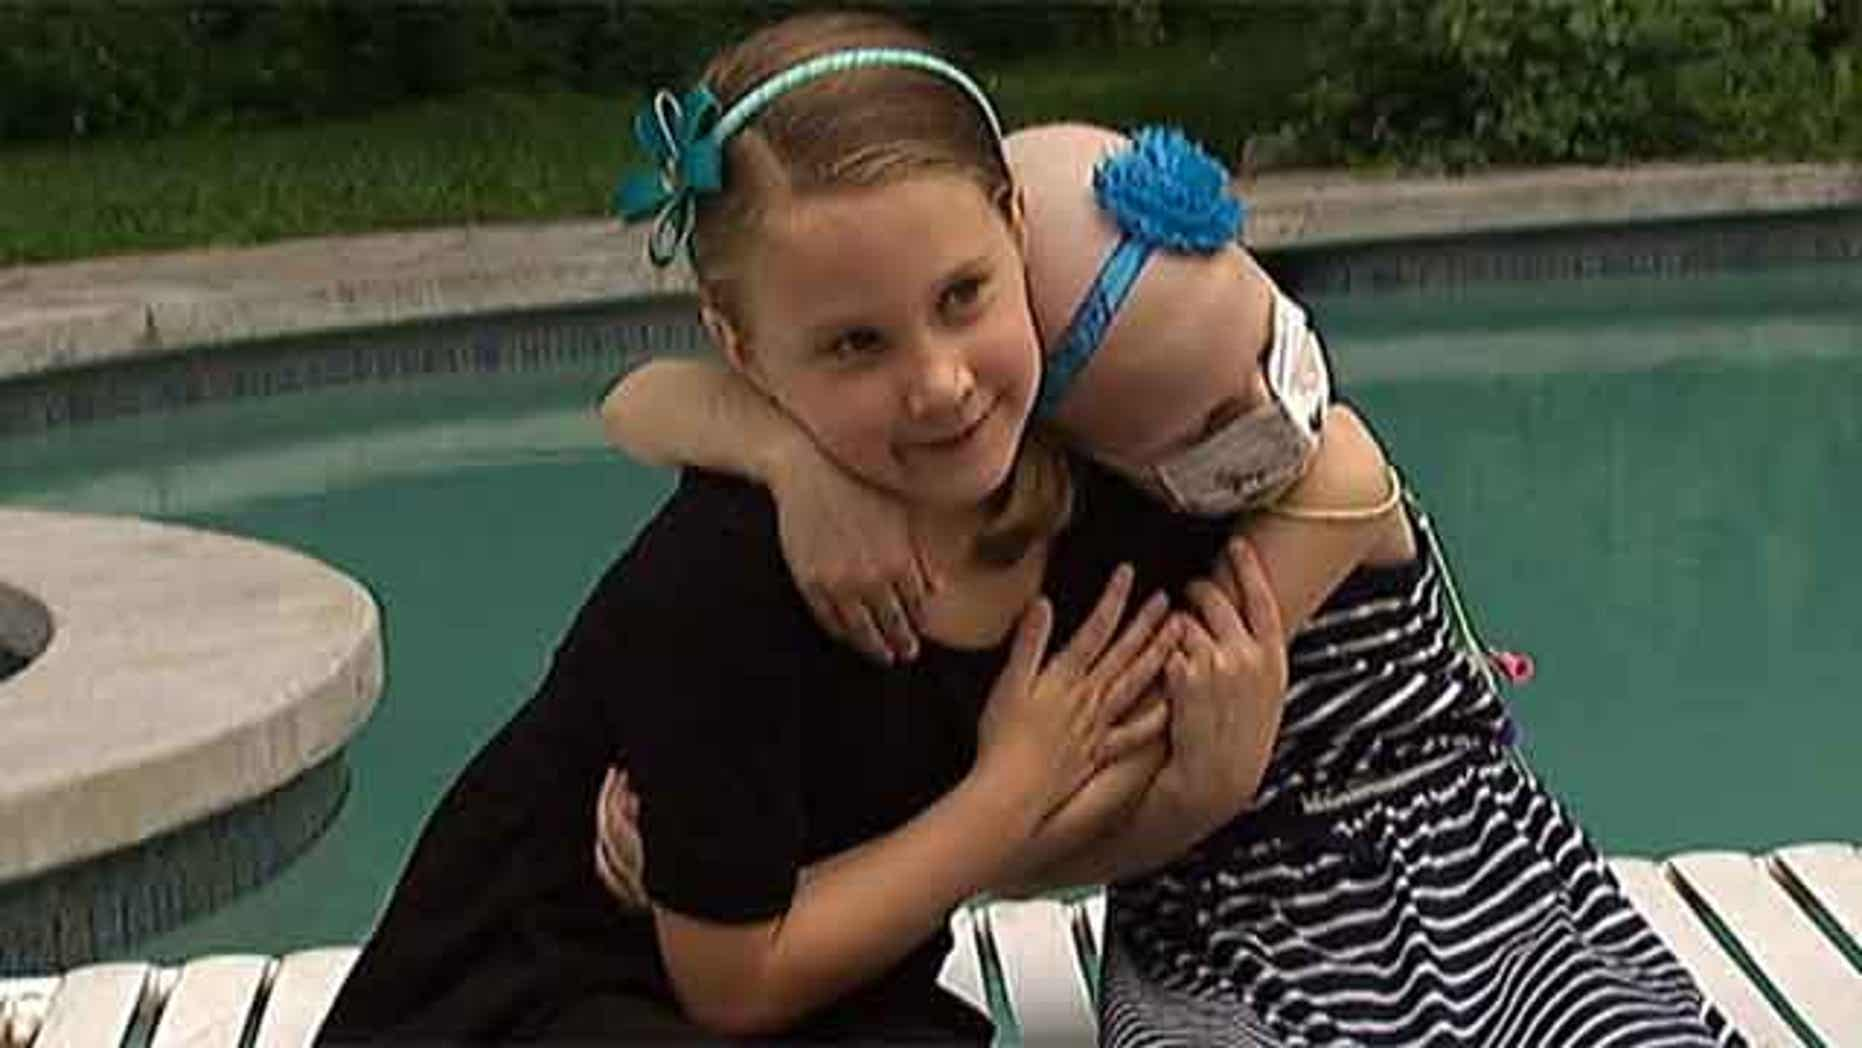 Hayden, left, was found to be a perfect match to donate bone marrow to her sister Sydney, right.